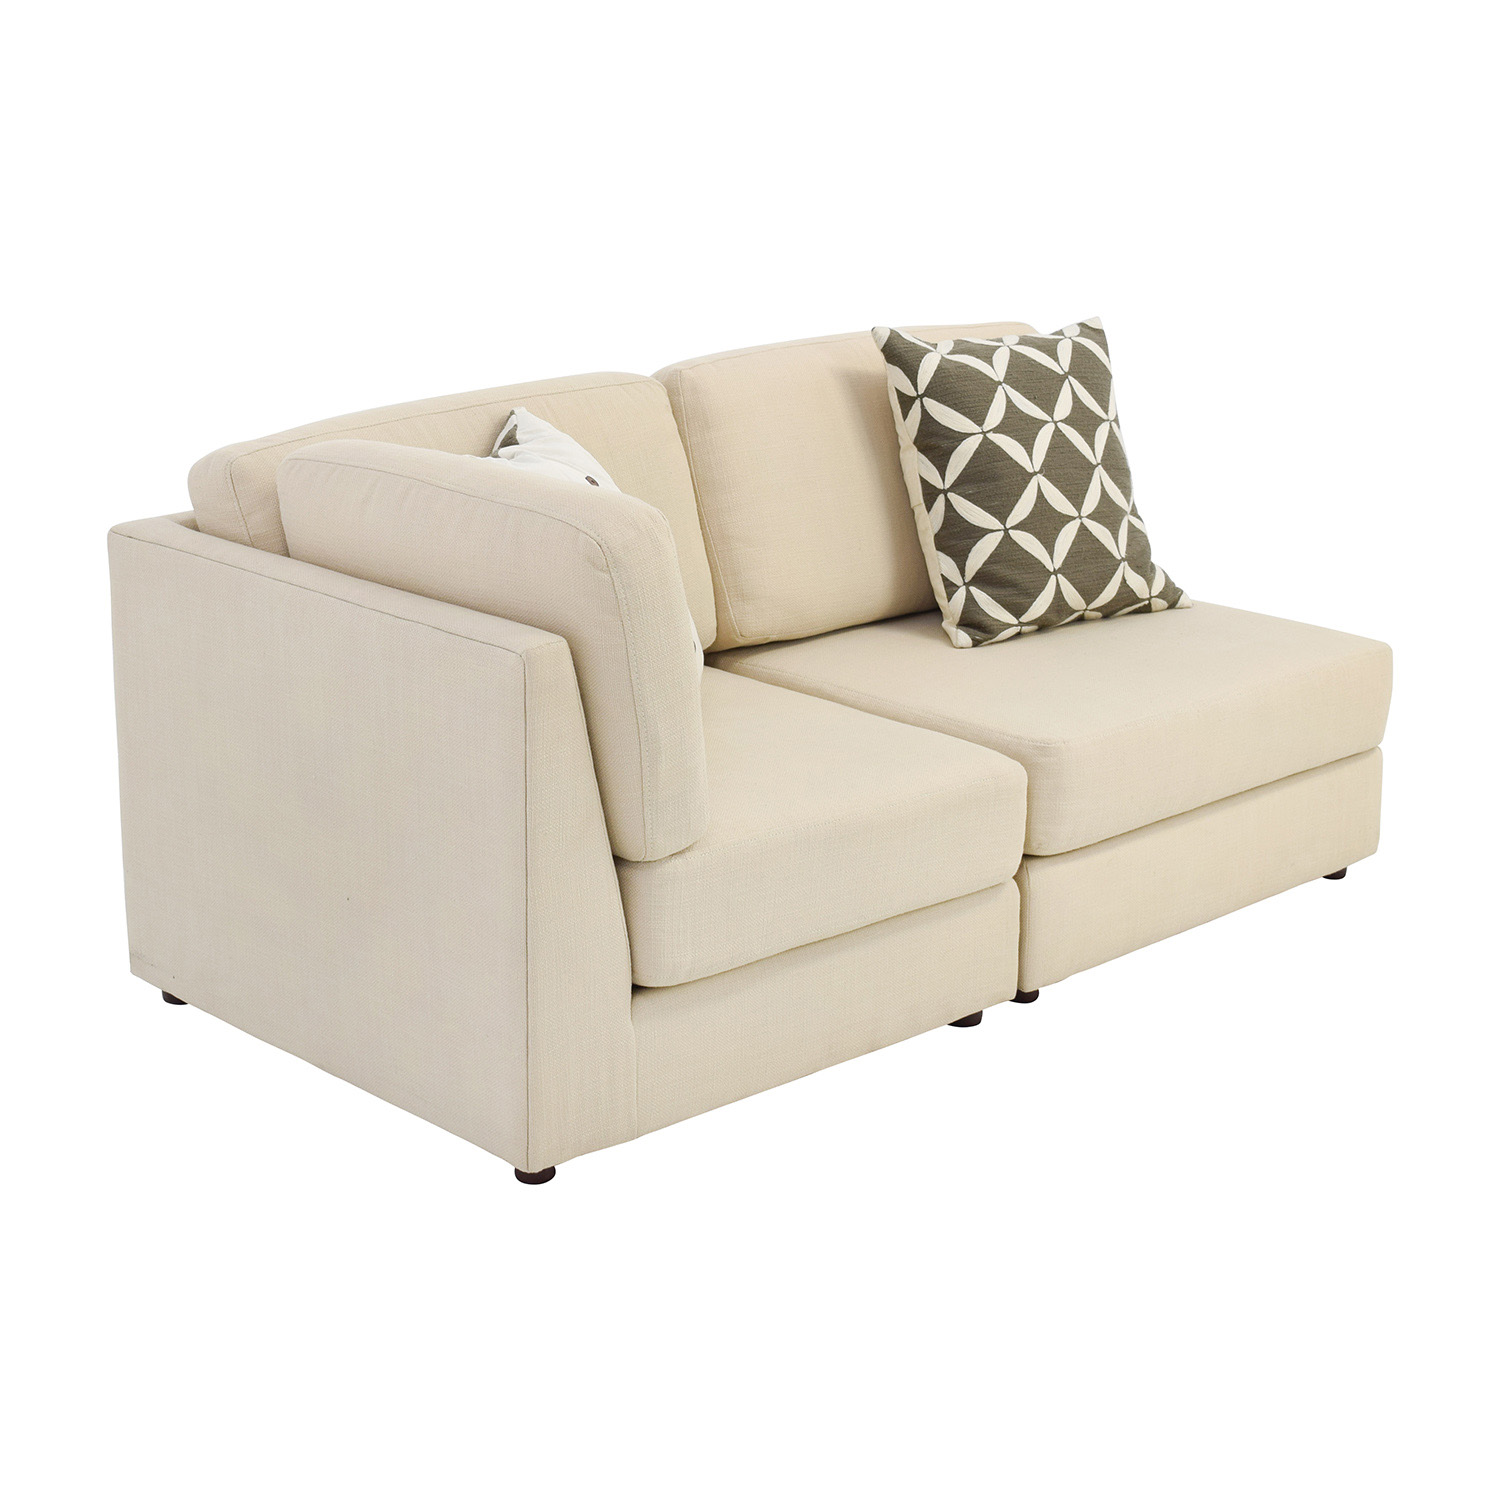 ... West Elm Cream Chaise Sofa or Two Chairs / Sofas ...  sc 1 st  Furnishare : cream chaise sofa - Sectionals, Sofas & Couches